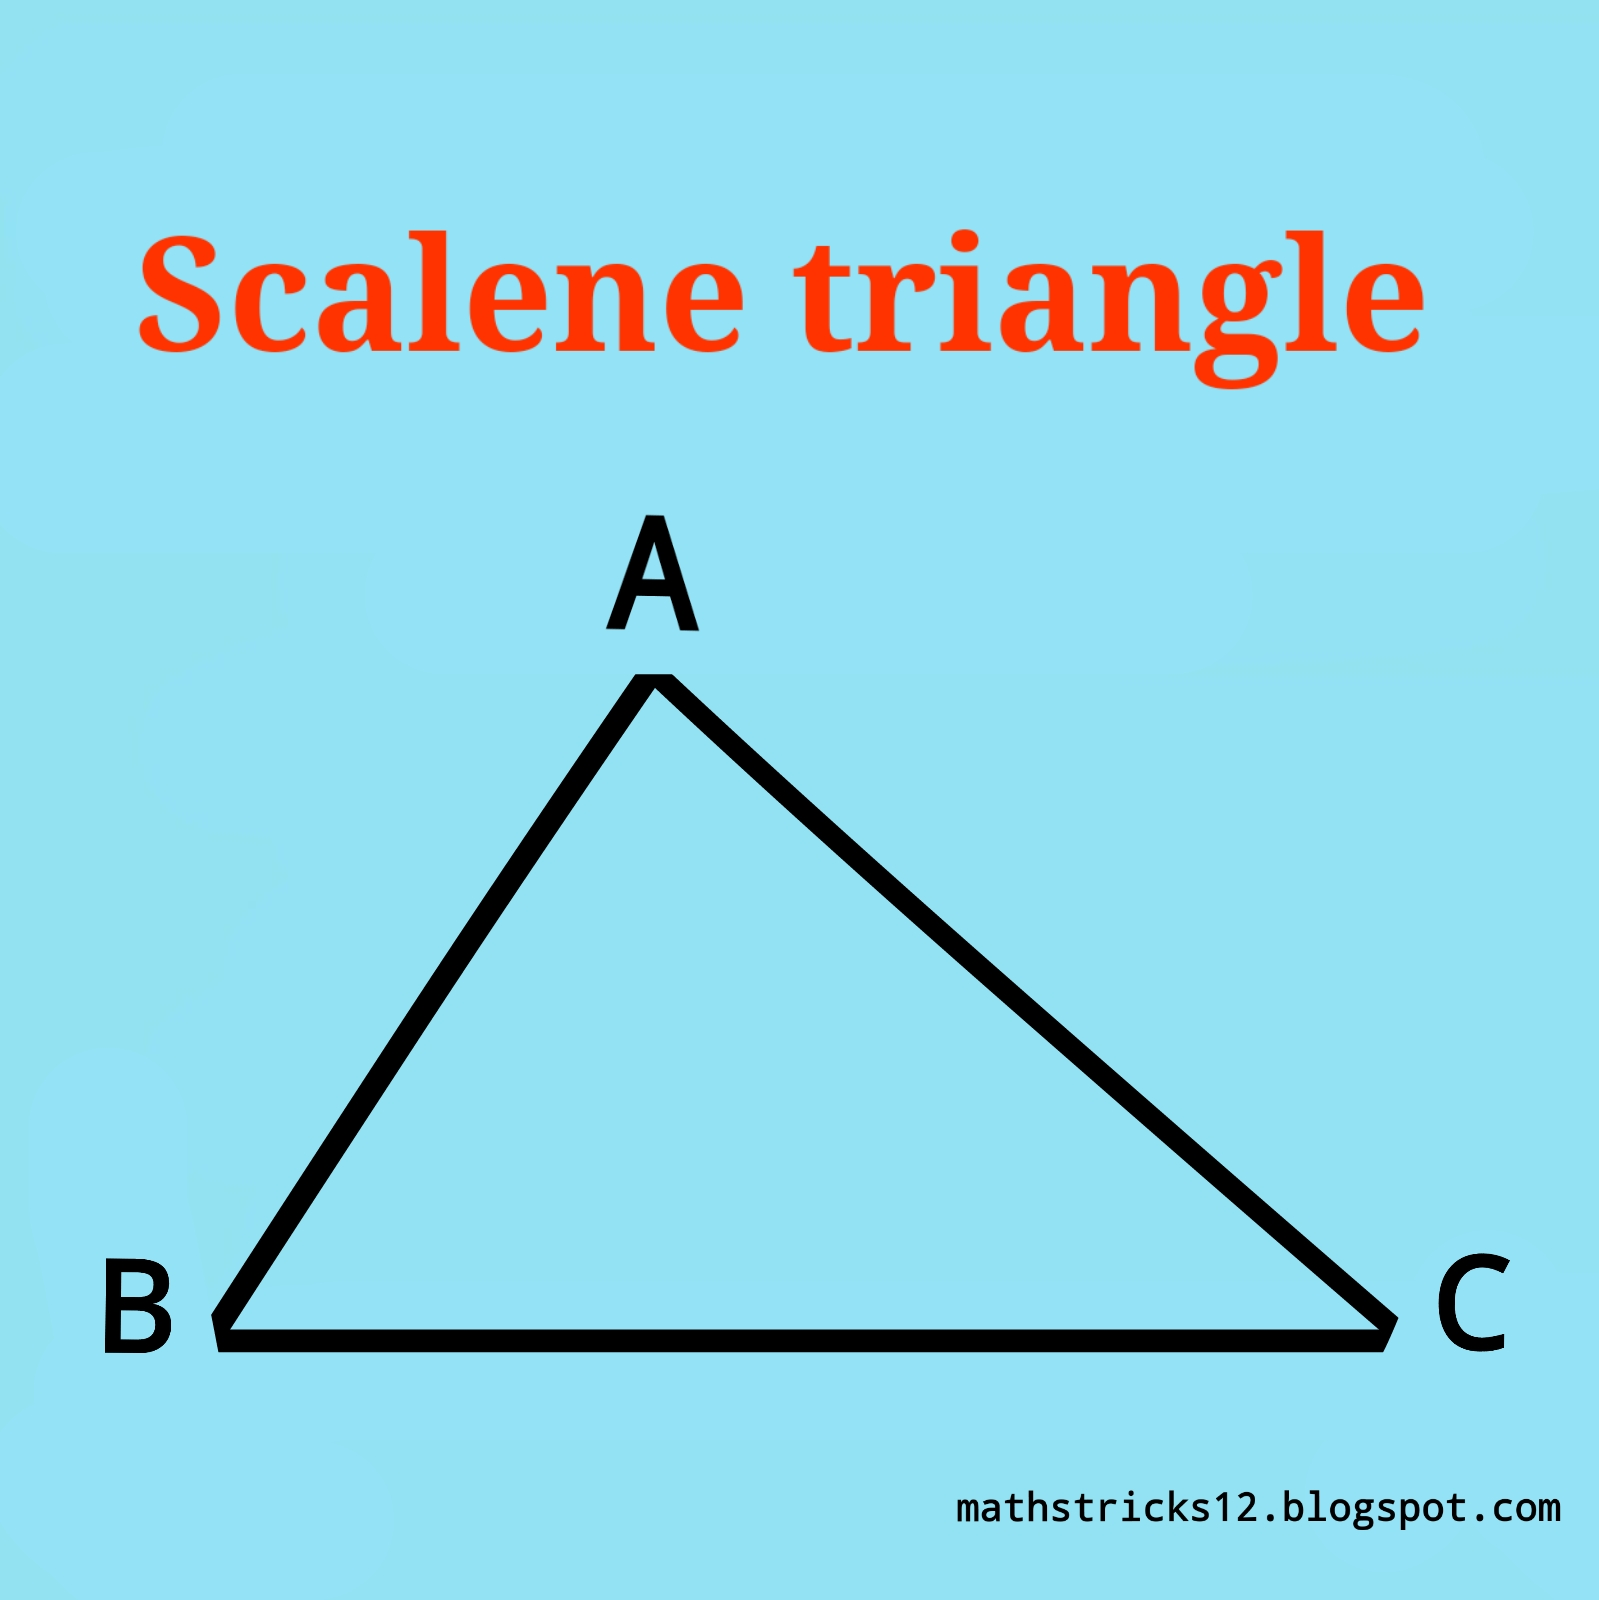 what is a scalene triangle 9 an obtuse scalene triangle 10 a right scalene triangle name _____ date _____ tons of free math worksheets at  classifying triangles worksheet 5-pack.